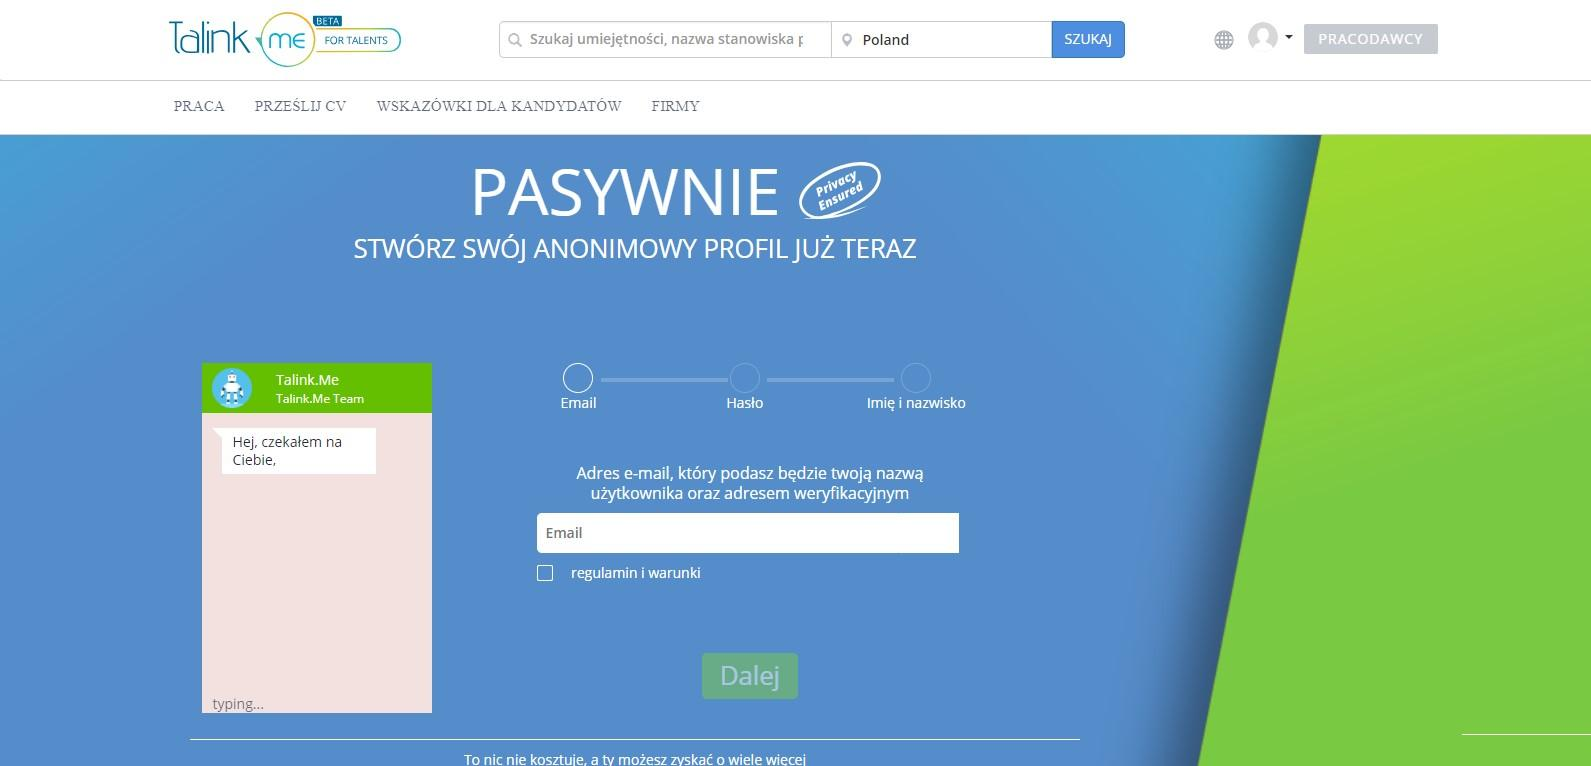 pasywny talink2